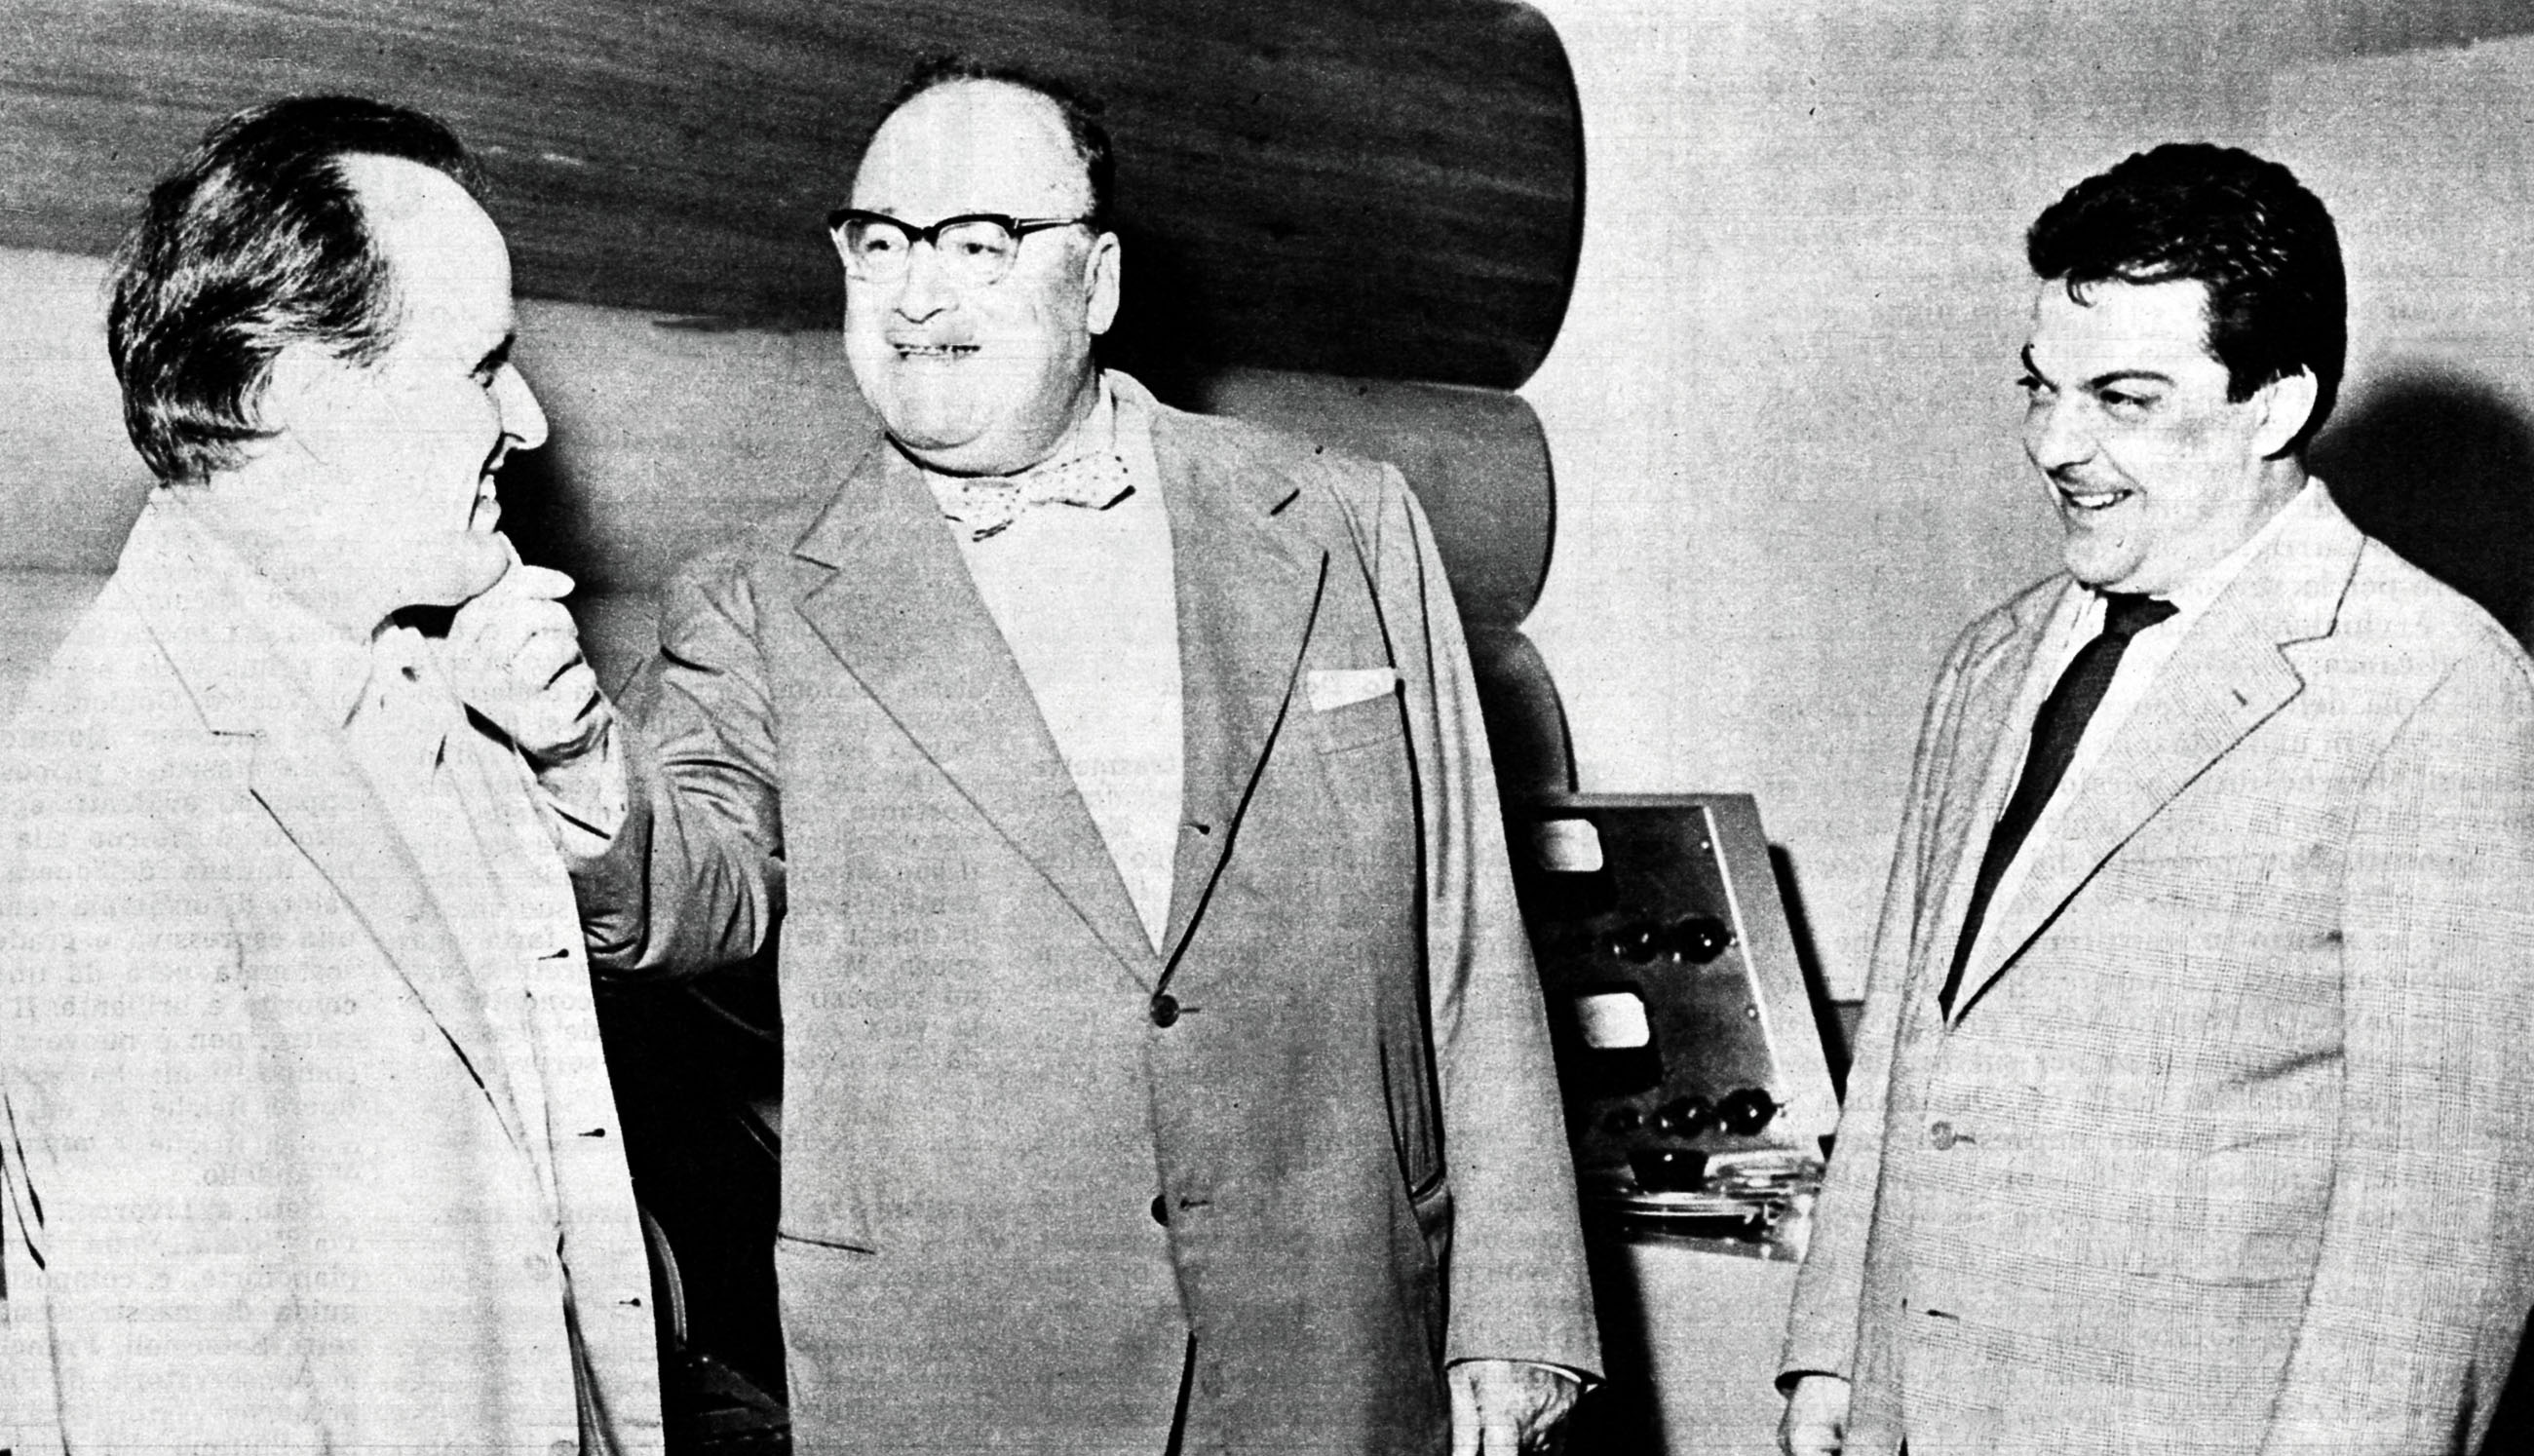 Nino Rota (left), with [[Riccardo Bacchelli]] and [[Bruno Maderna]] in 1963